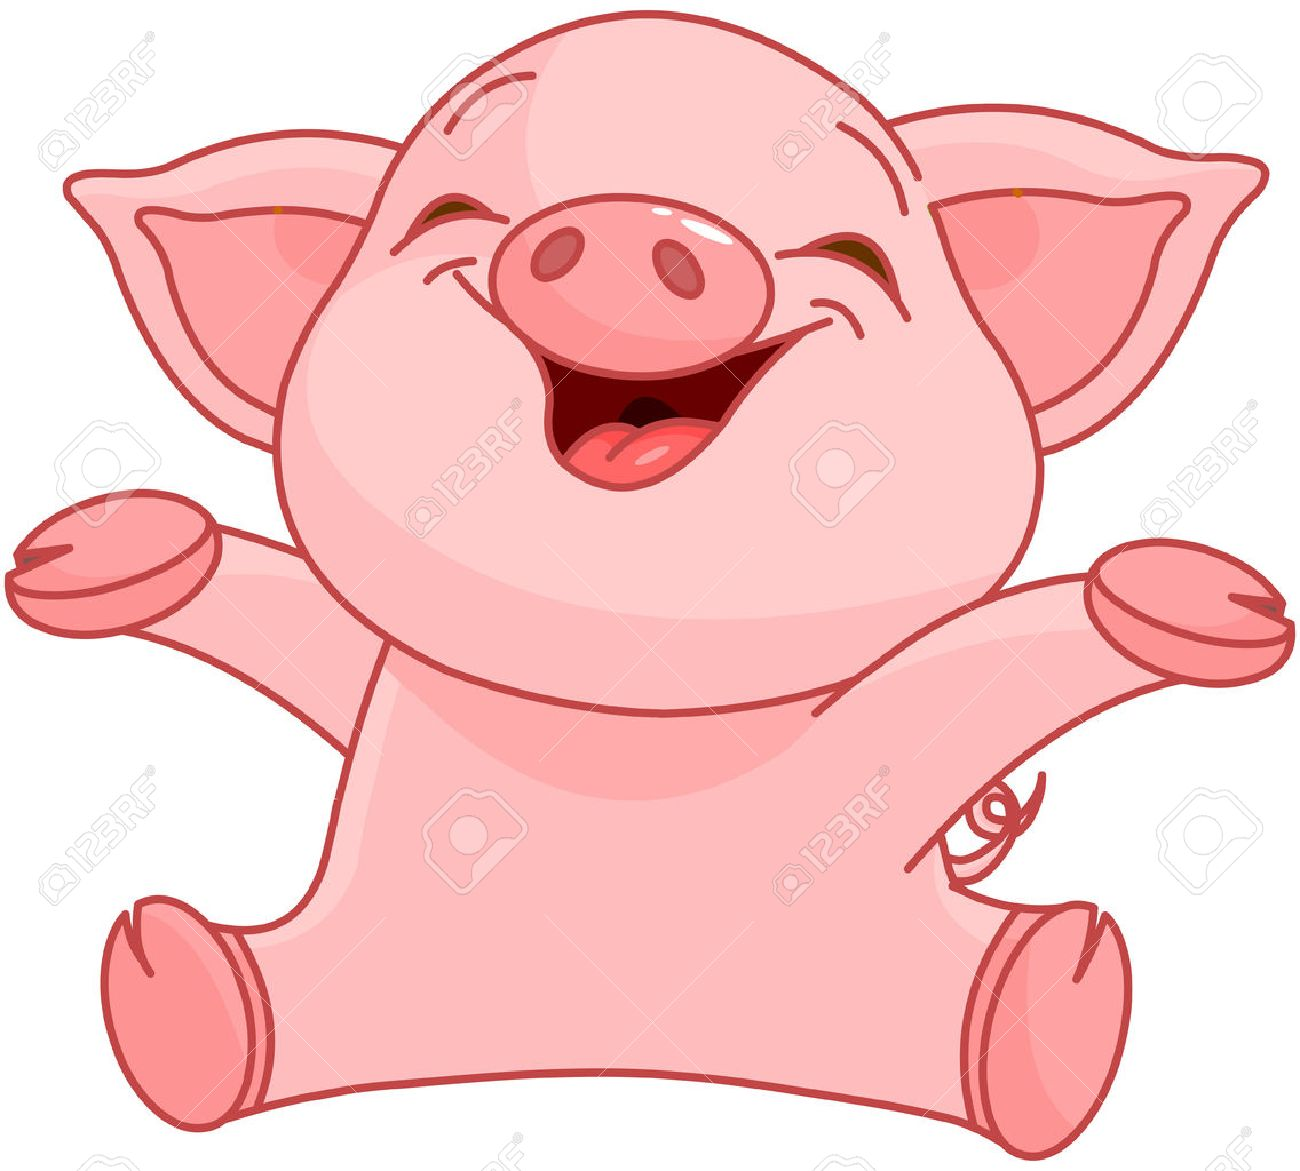 hight resolution of illustration of very cute piggy stock vector 31808470